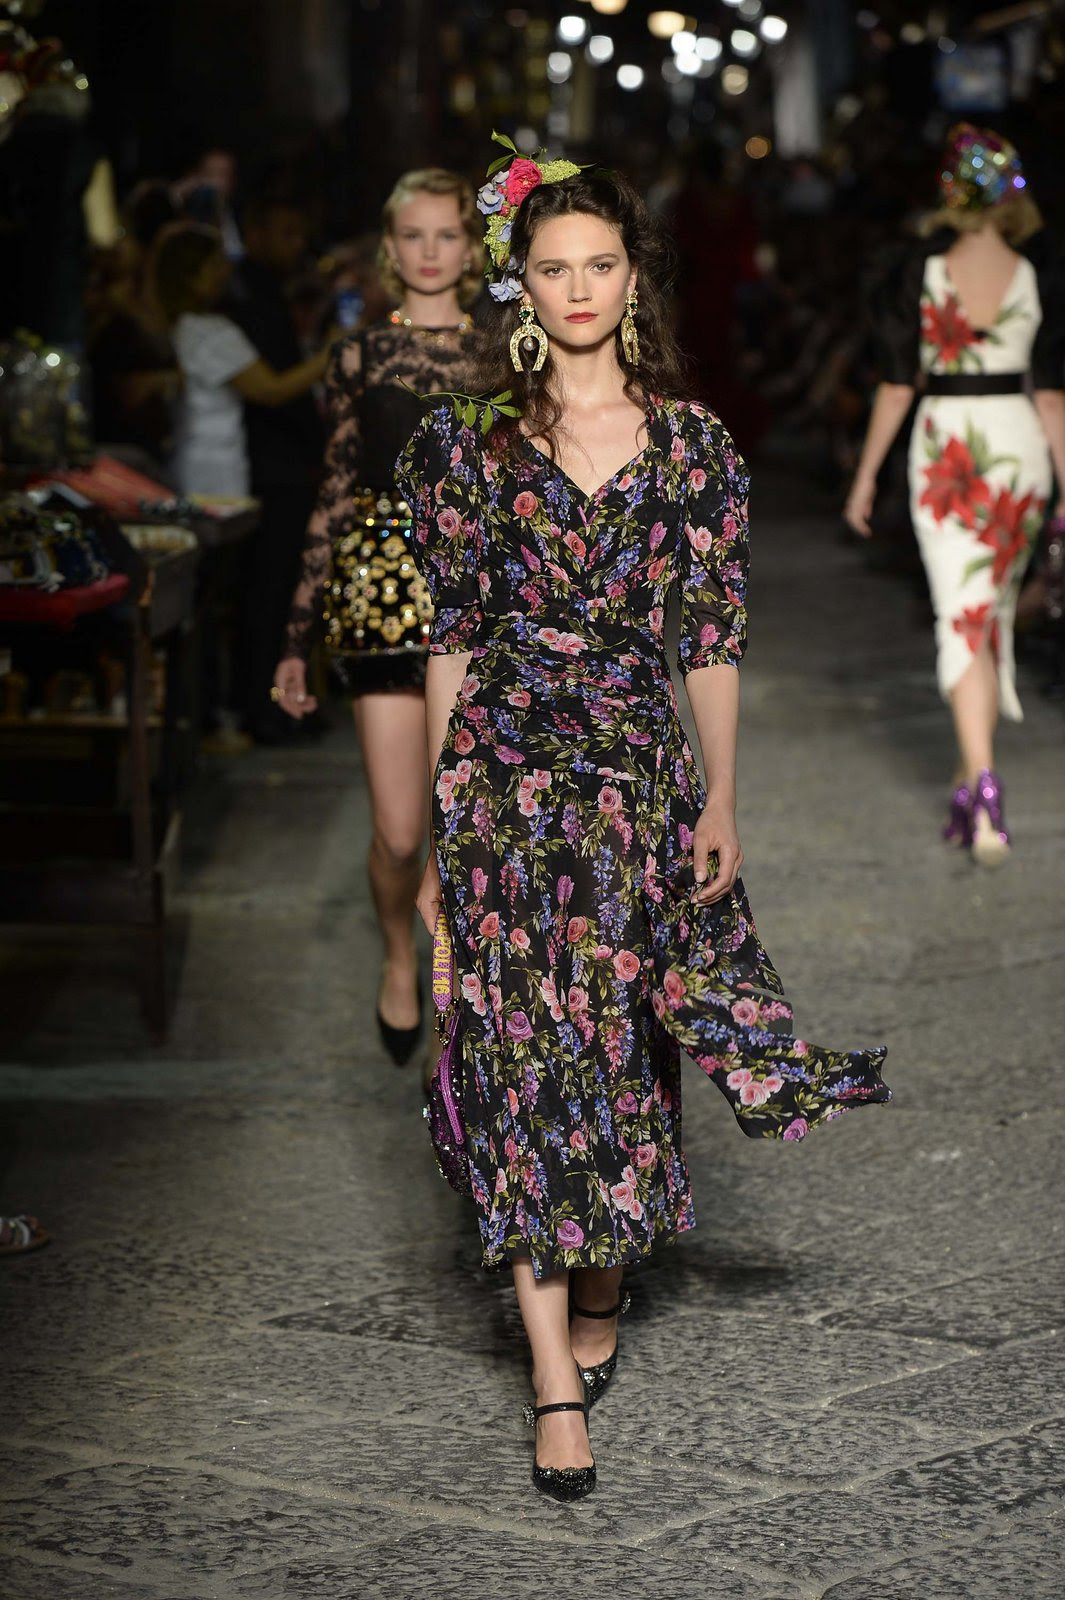 http://media.vogue.com/r/h_1600,w_1240/2016/07/09/29-dolce-and-gabbana-alta-moda-2016.jpg